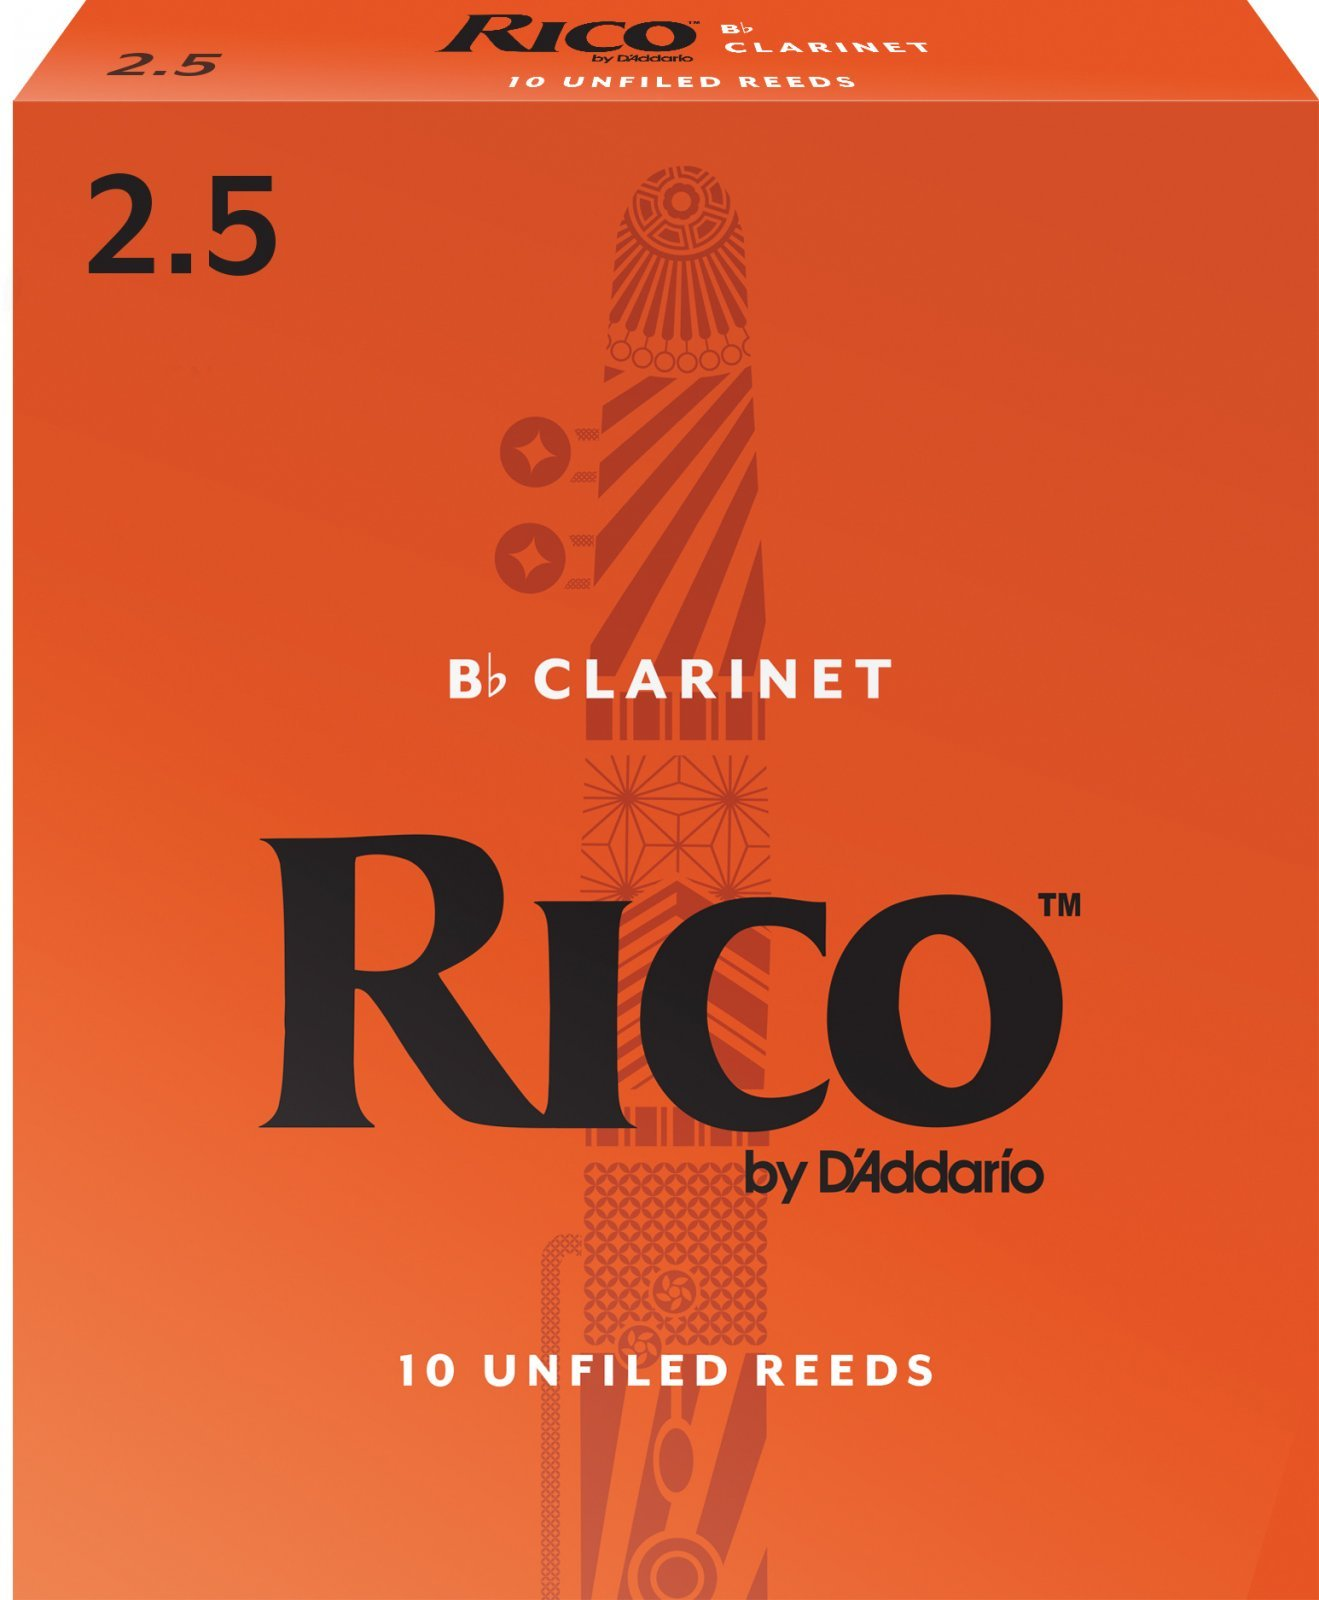 Rico by D'Addario Bb Clarinet Reeds, Strength 2.5, 10-pack